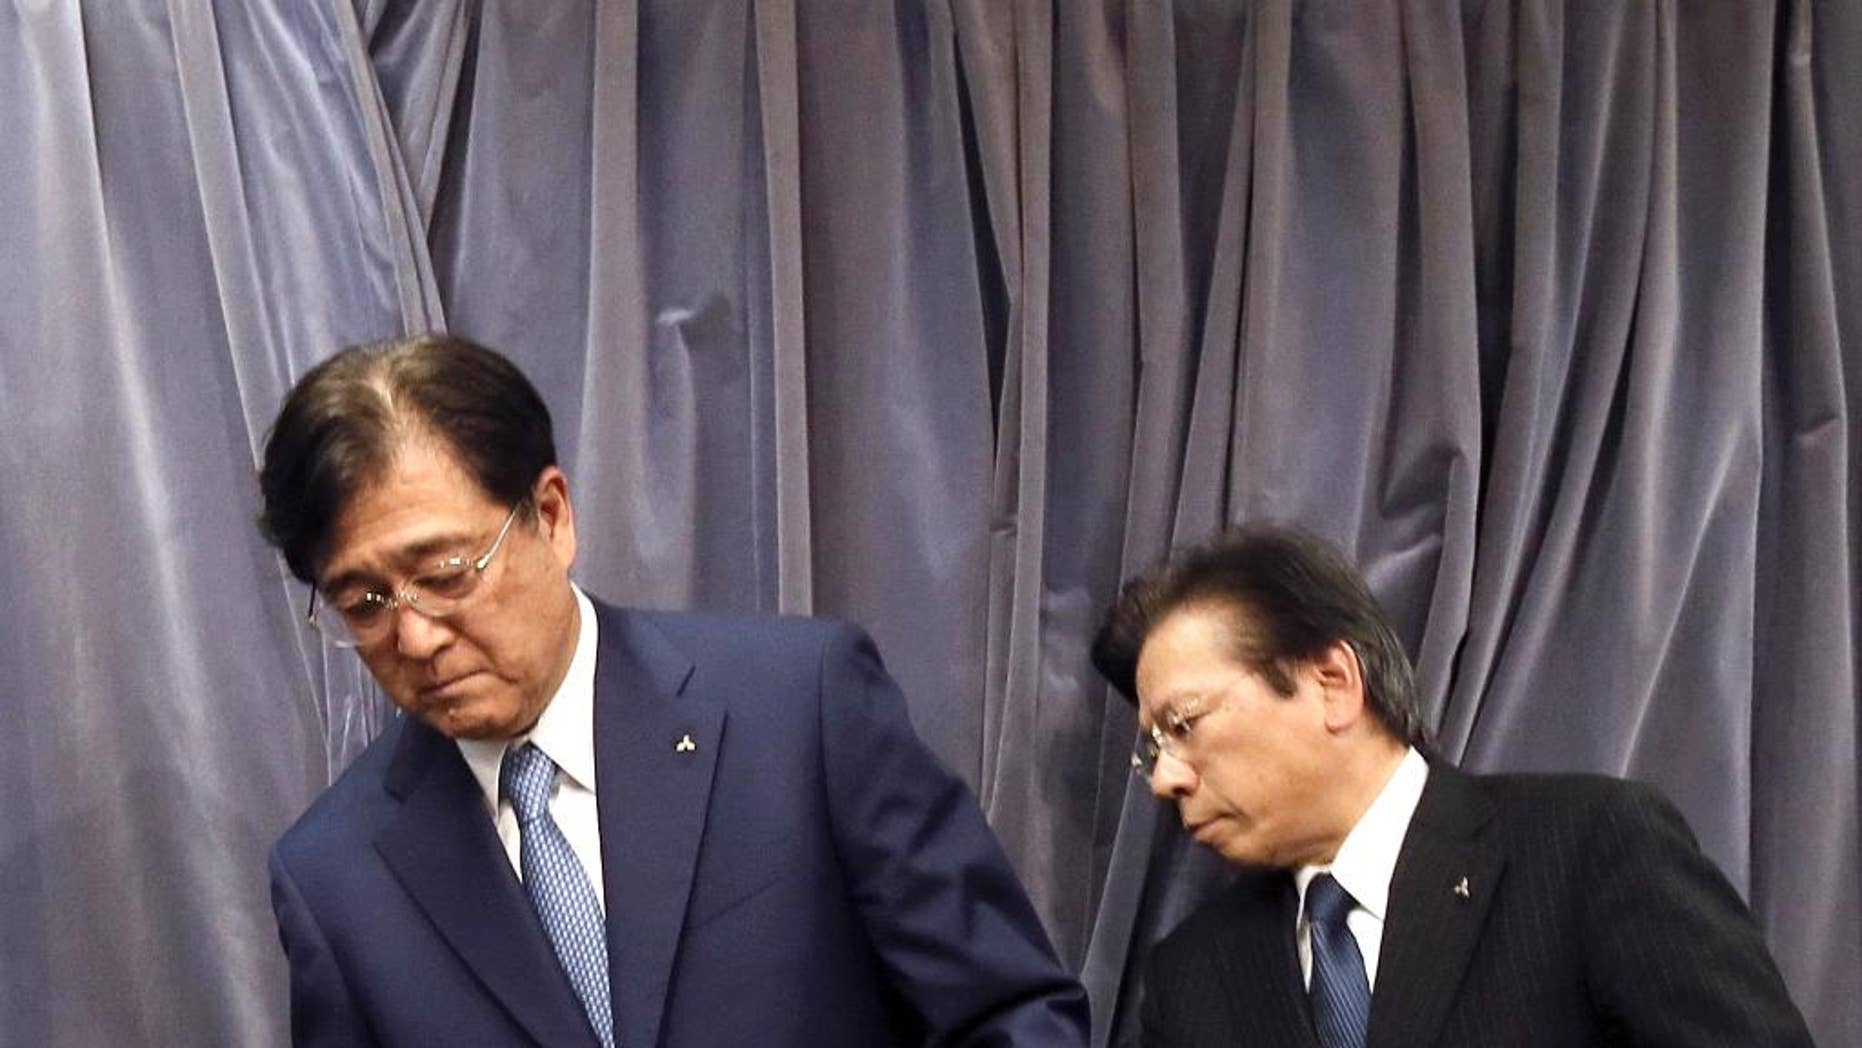 FILE - In this May 11, 2016 photo, Mitsubishi Motors Corp. Chairman and CEO Osamu Masuko, left, and President Tetsuro Aikawa prepare for their press conference in Tokyo.  Mitsubishi Motors Corp., which recently acknowledged it inflated mileage for its models, is forecasting a 145 billion yen ($1.4 billion) loss for the fiscal year through March 2017. The Japanese automaker said Wednesday, June 22,  vehicle sales will drop around the world, especially in Japan, where it expects a 41 percent plunge. The projected loss is a reversal from the 72.6 billion yen profit for the fiscal year ended March.   (AP Photo/Eugene Hoshiko, File)